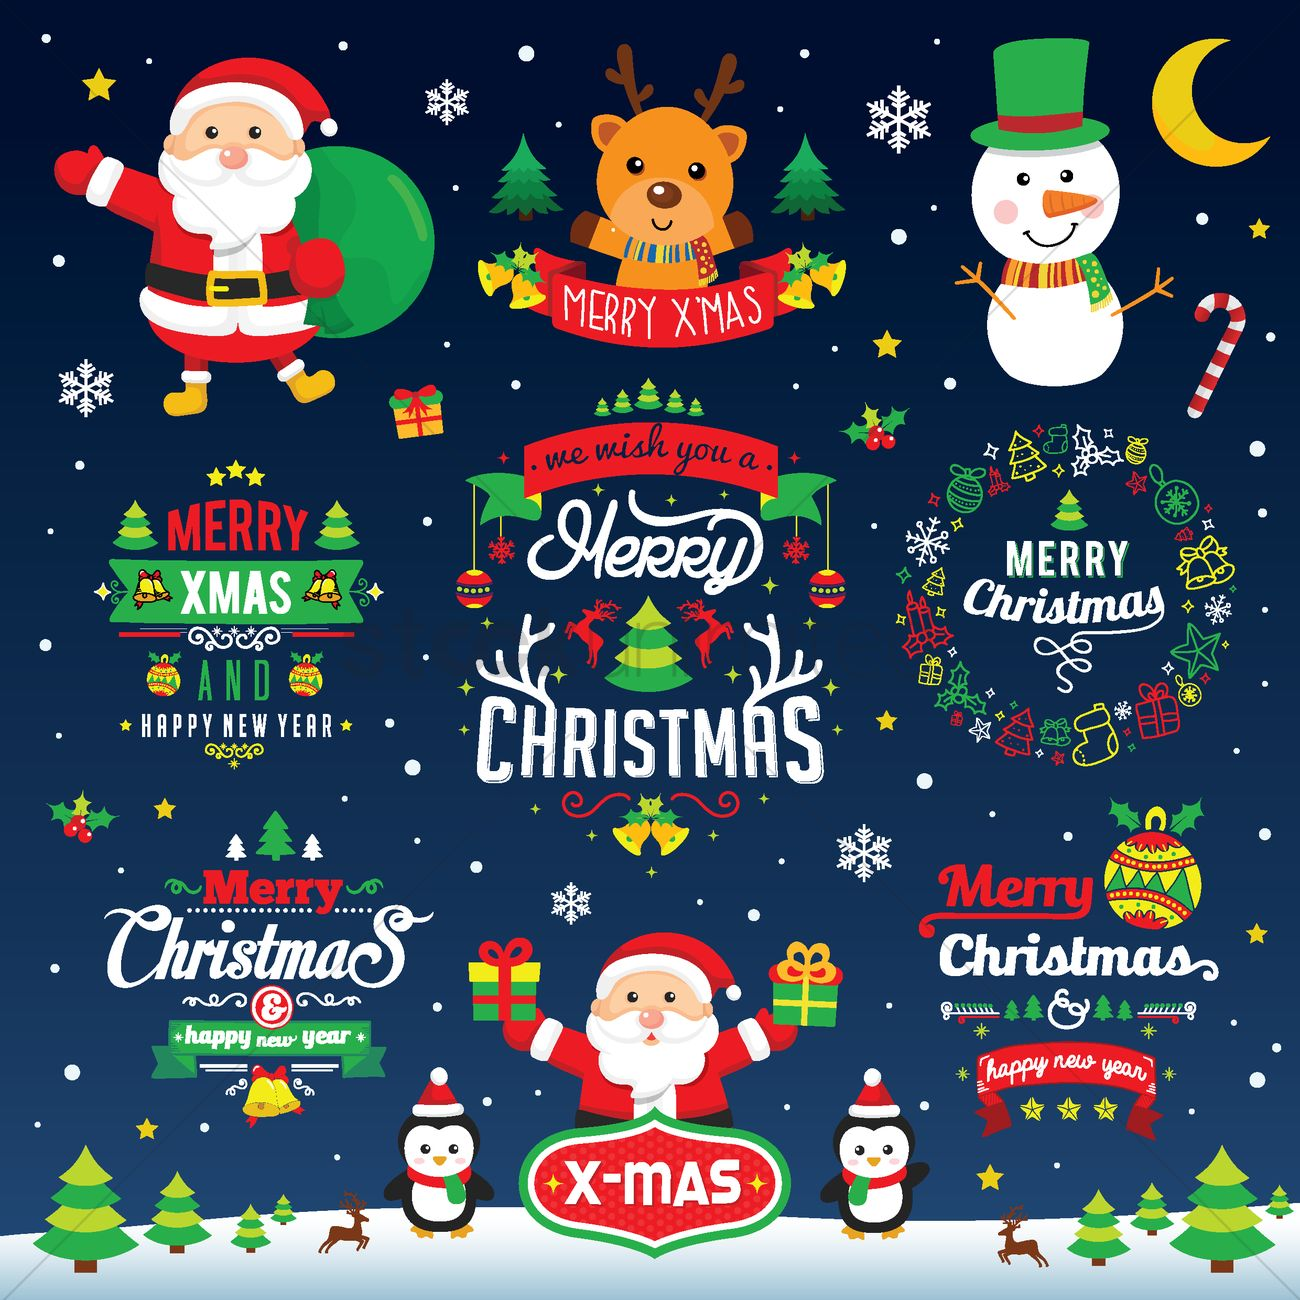 Collection of merry christmas card design Vector Image - 1746590 ...